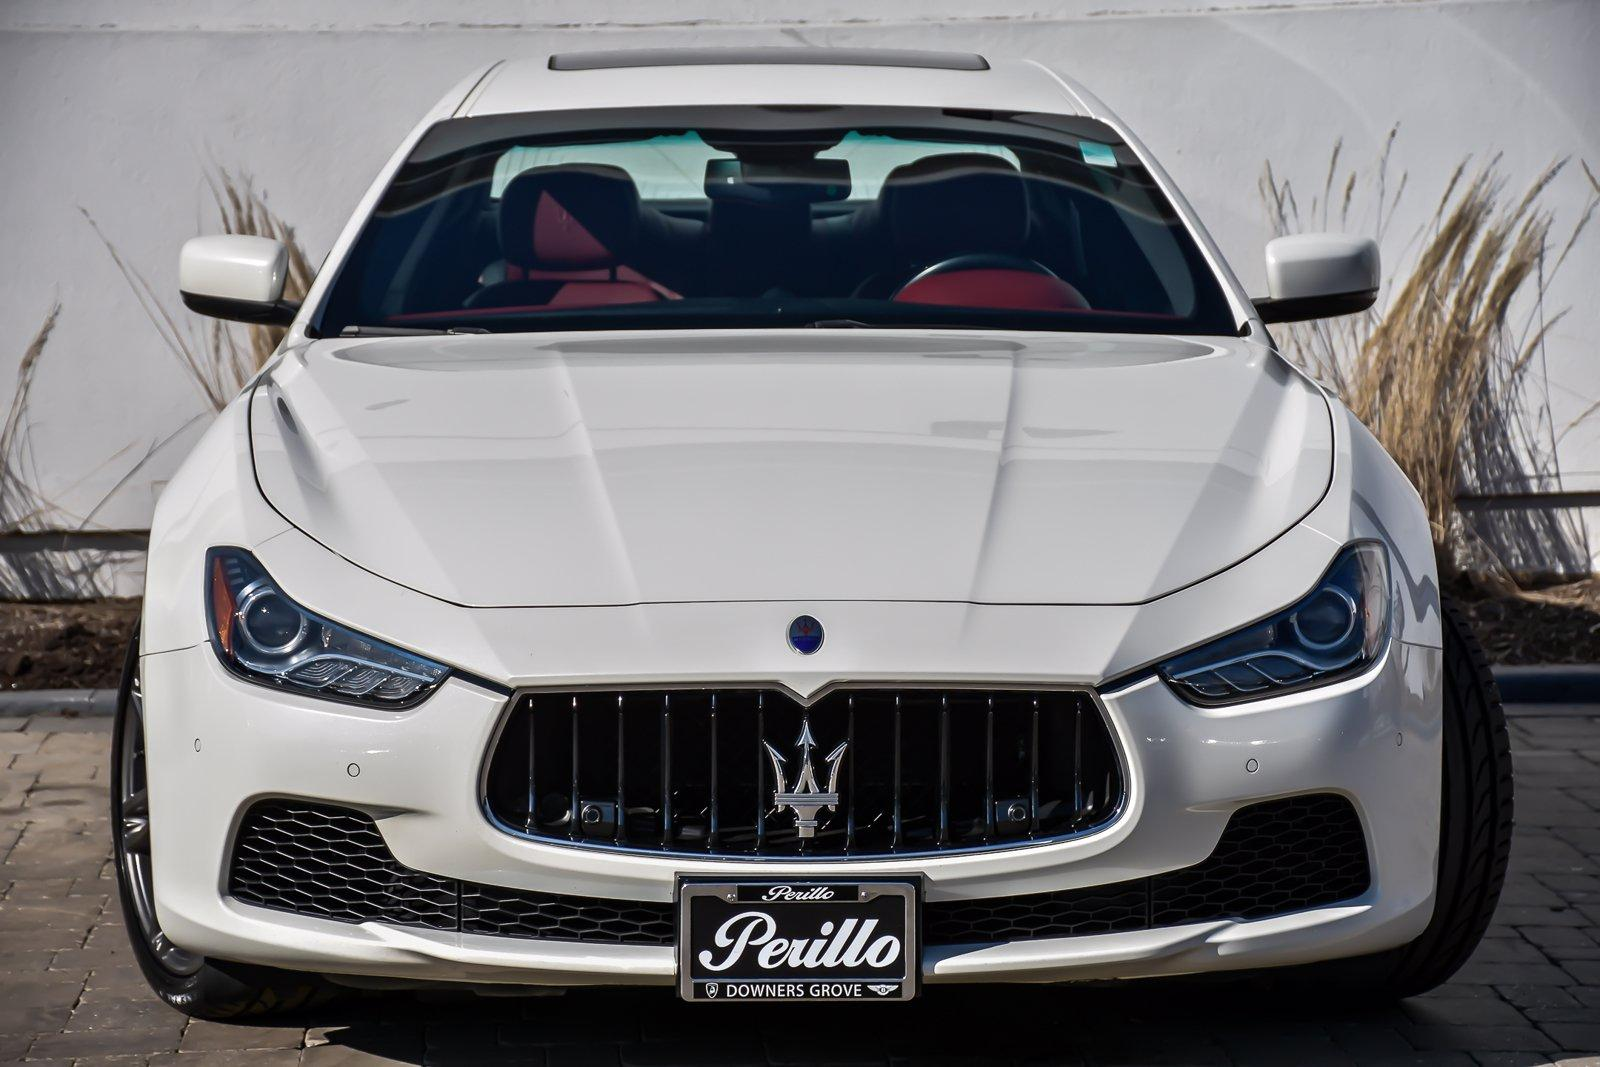 Used 2016 Maserati Ghibli S Q4 Premium/Luxury | Downers Grove, IL